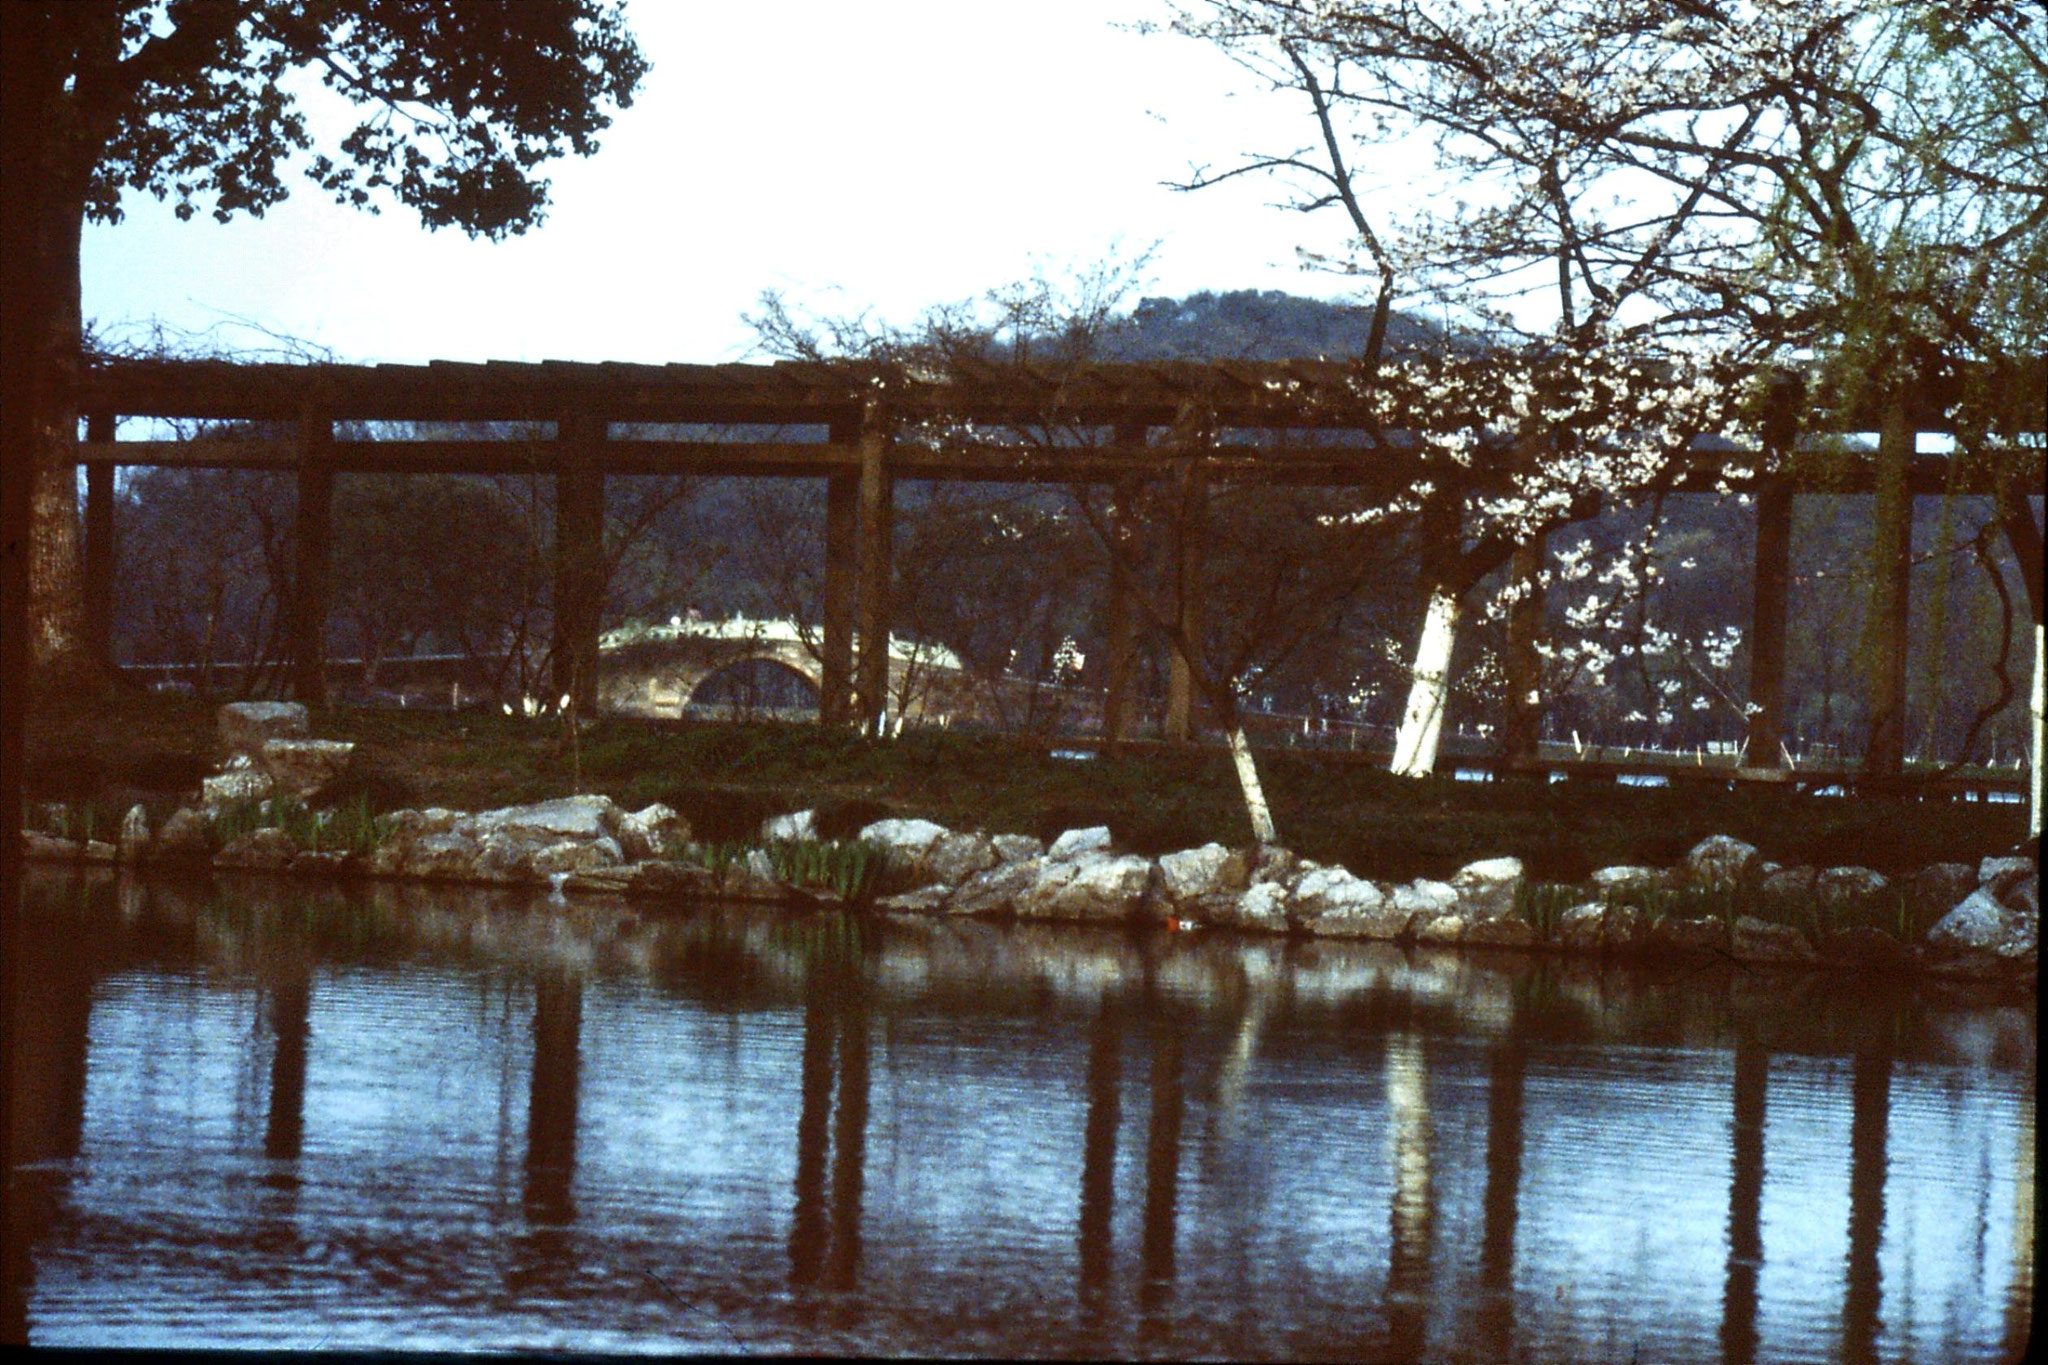 26/3/1989: 24: Yingbo bridge